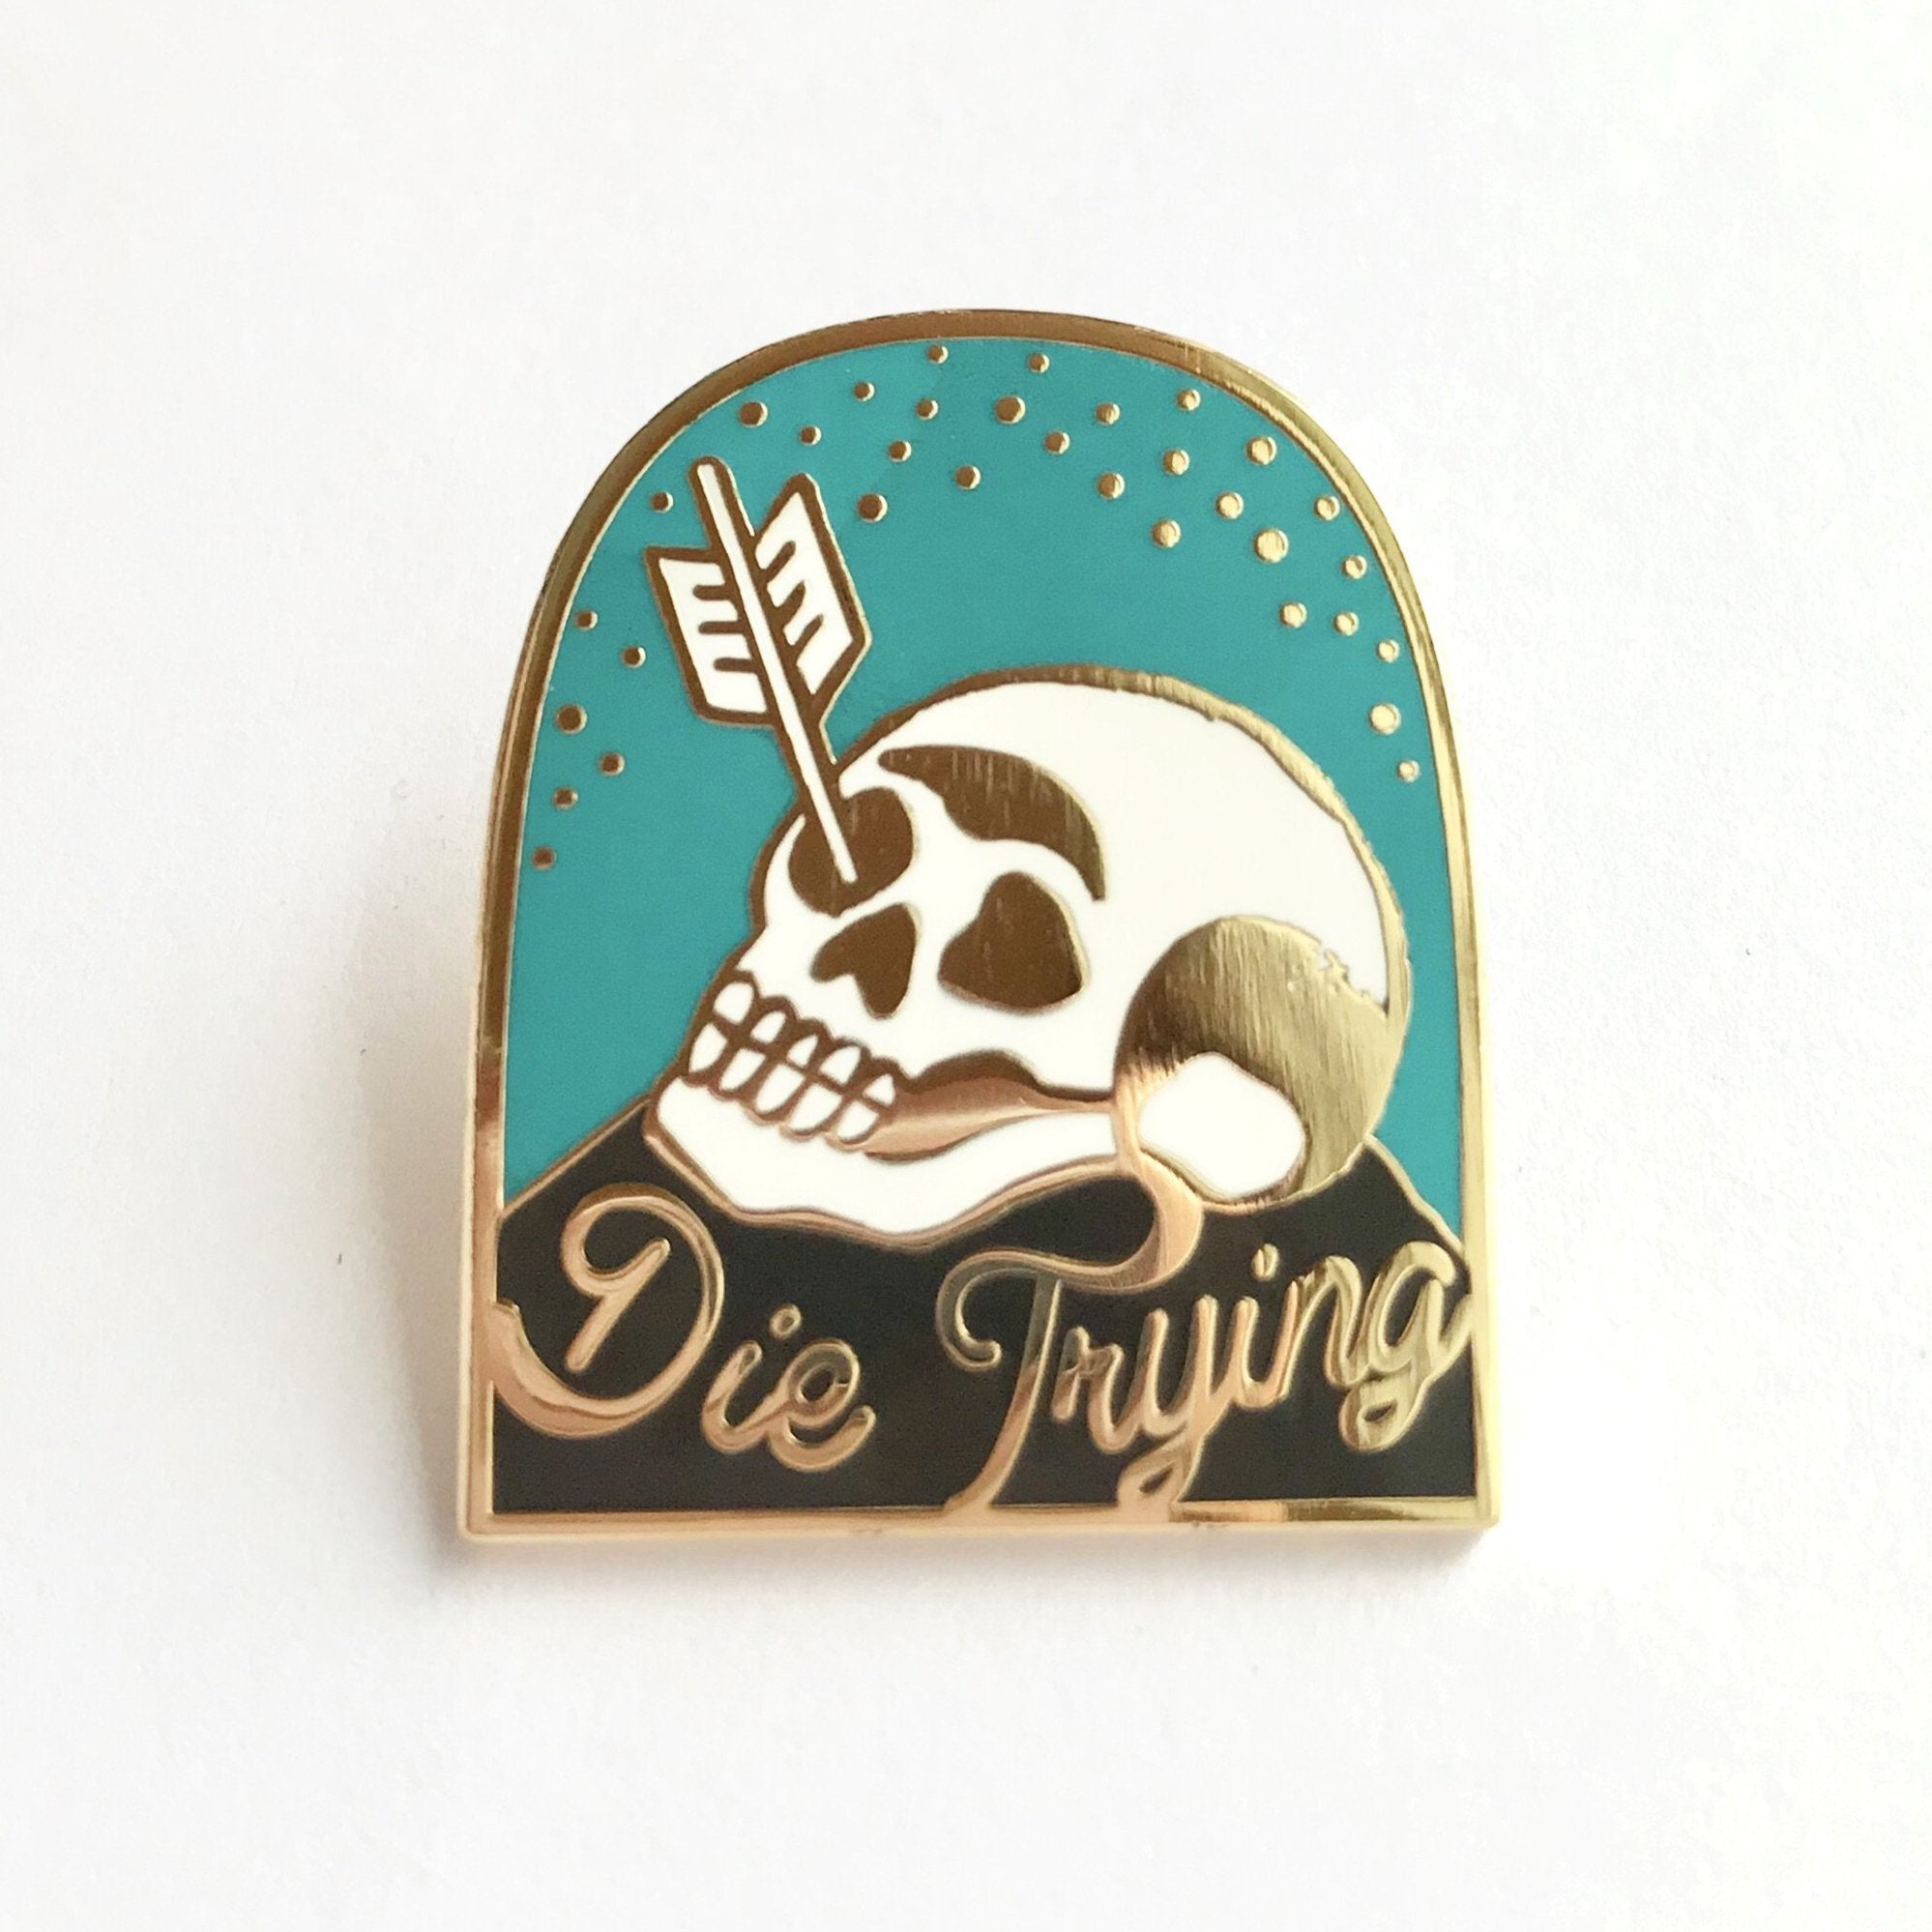 Die Trying Enamel Pin